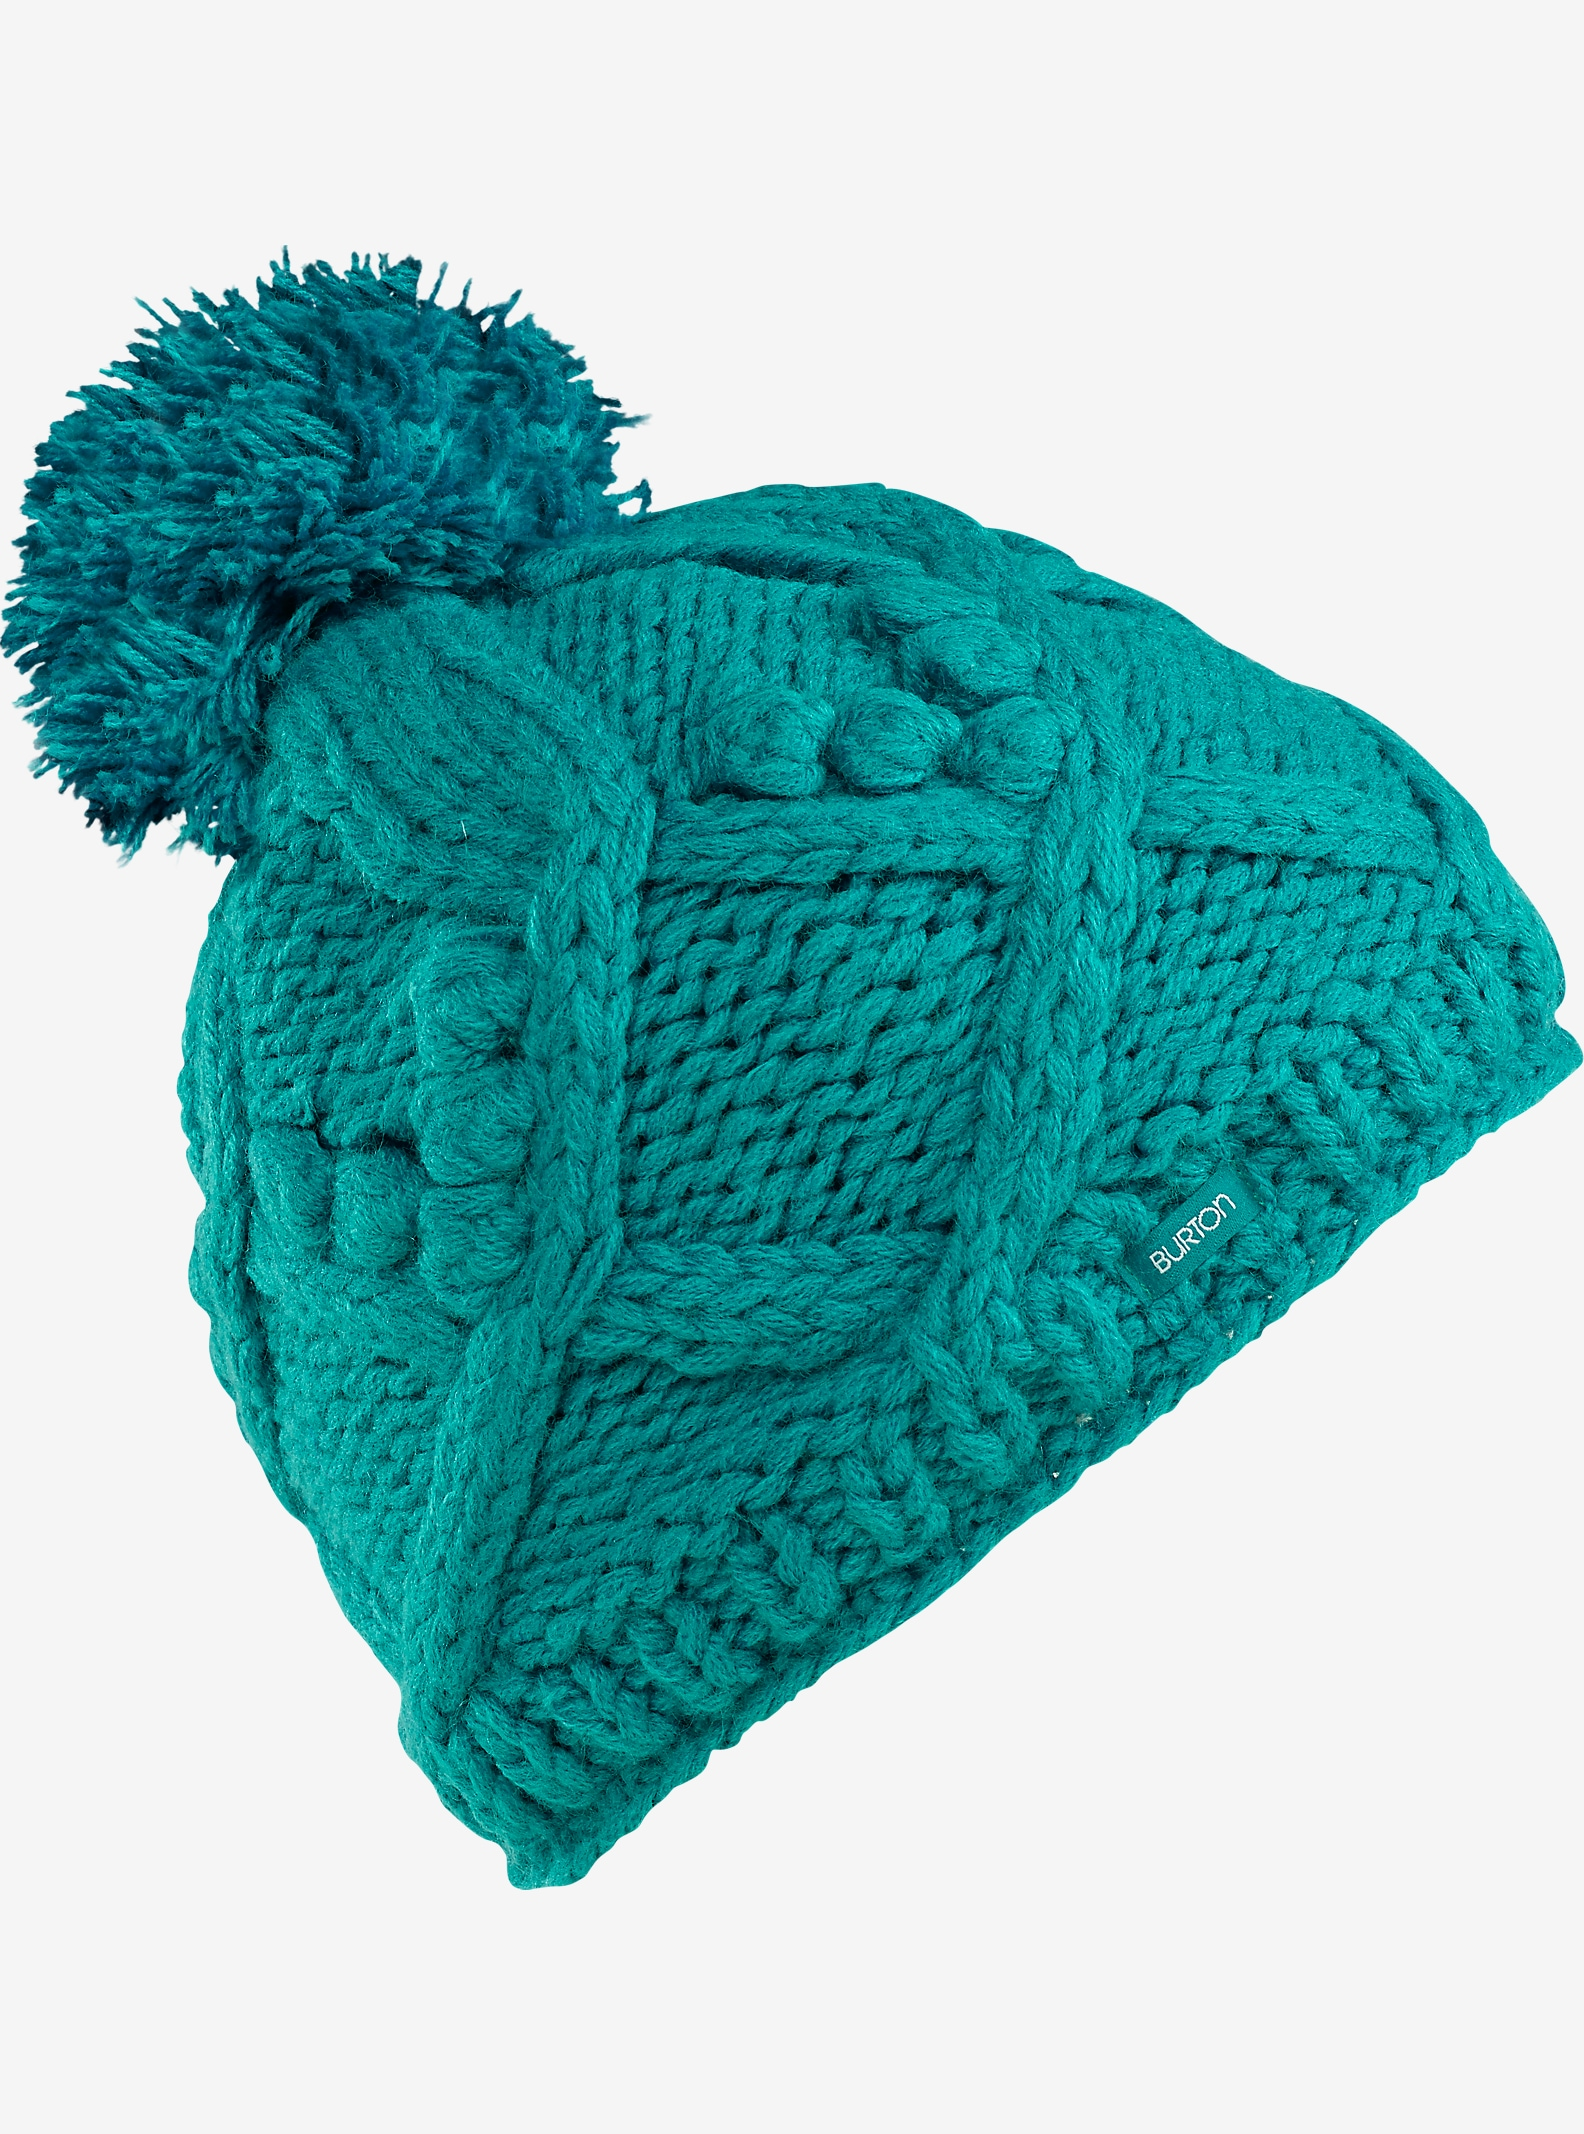 Burton Girls' Chloe Beanie shown in Everglade